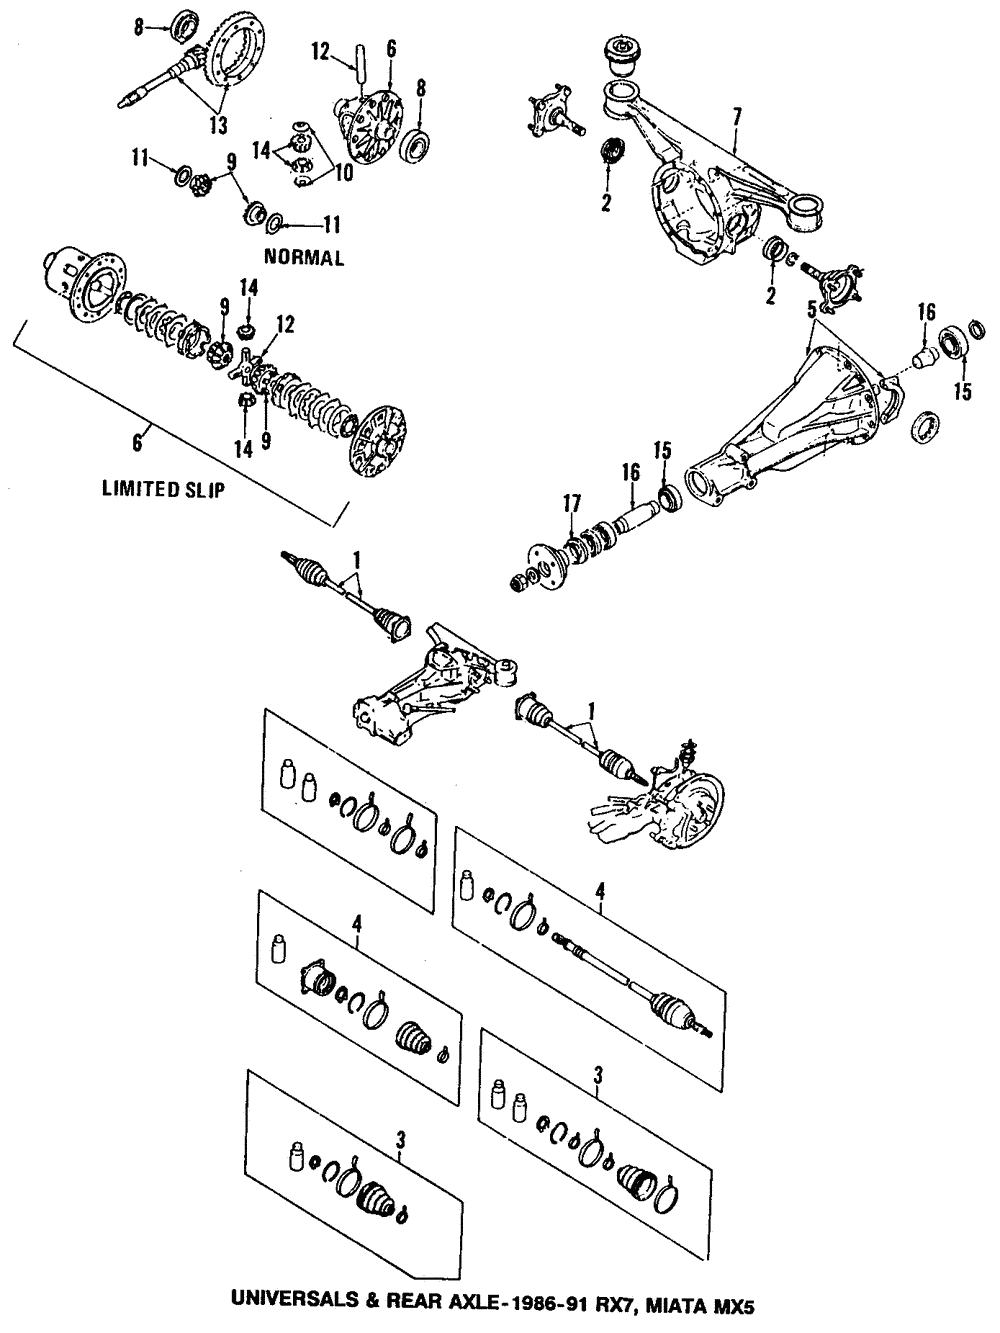 Ridgid 4 Wire 220v Plug Wiring Diagram Electrical Schematics 1986 Rx7 Engine Diagrams 3 Wires